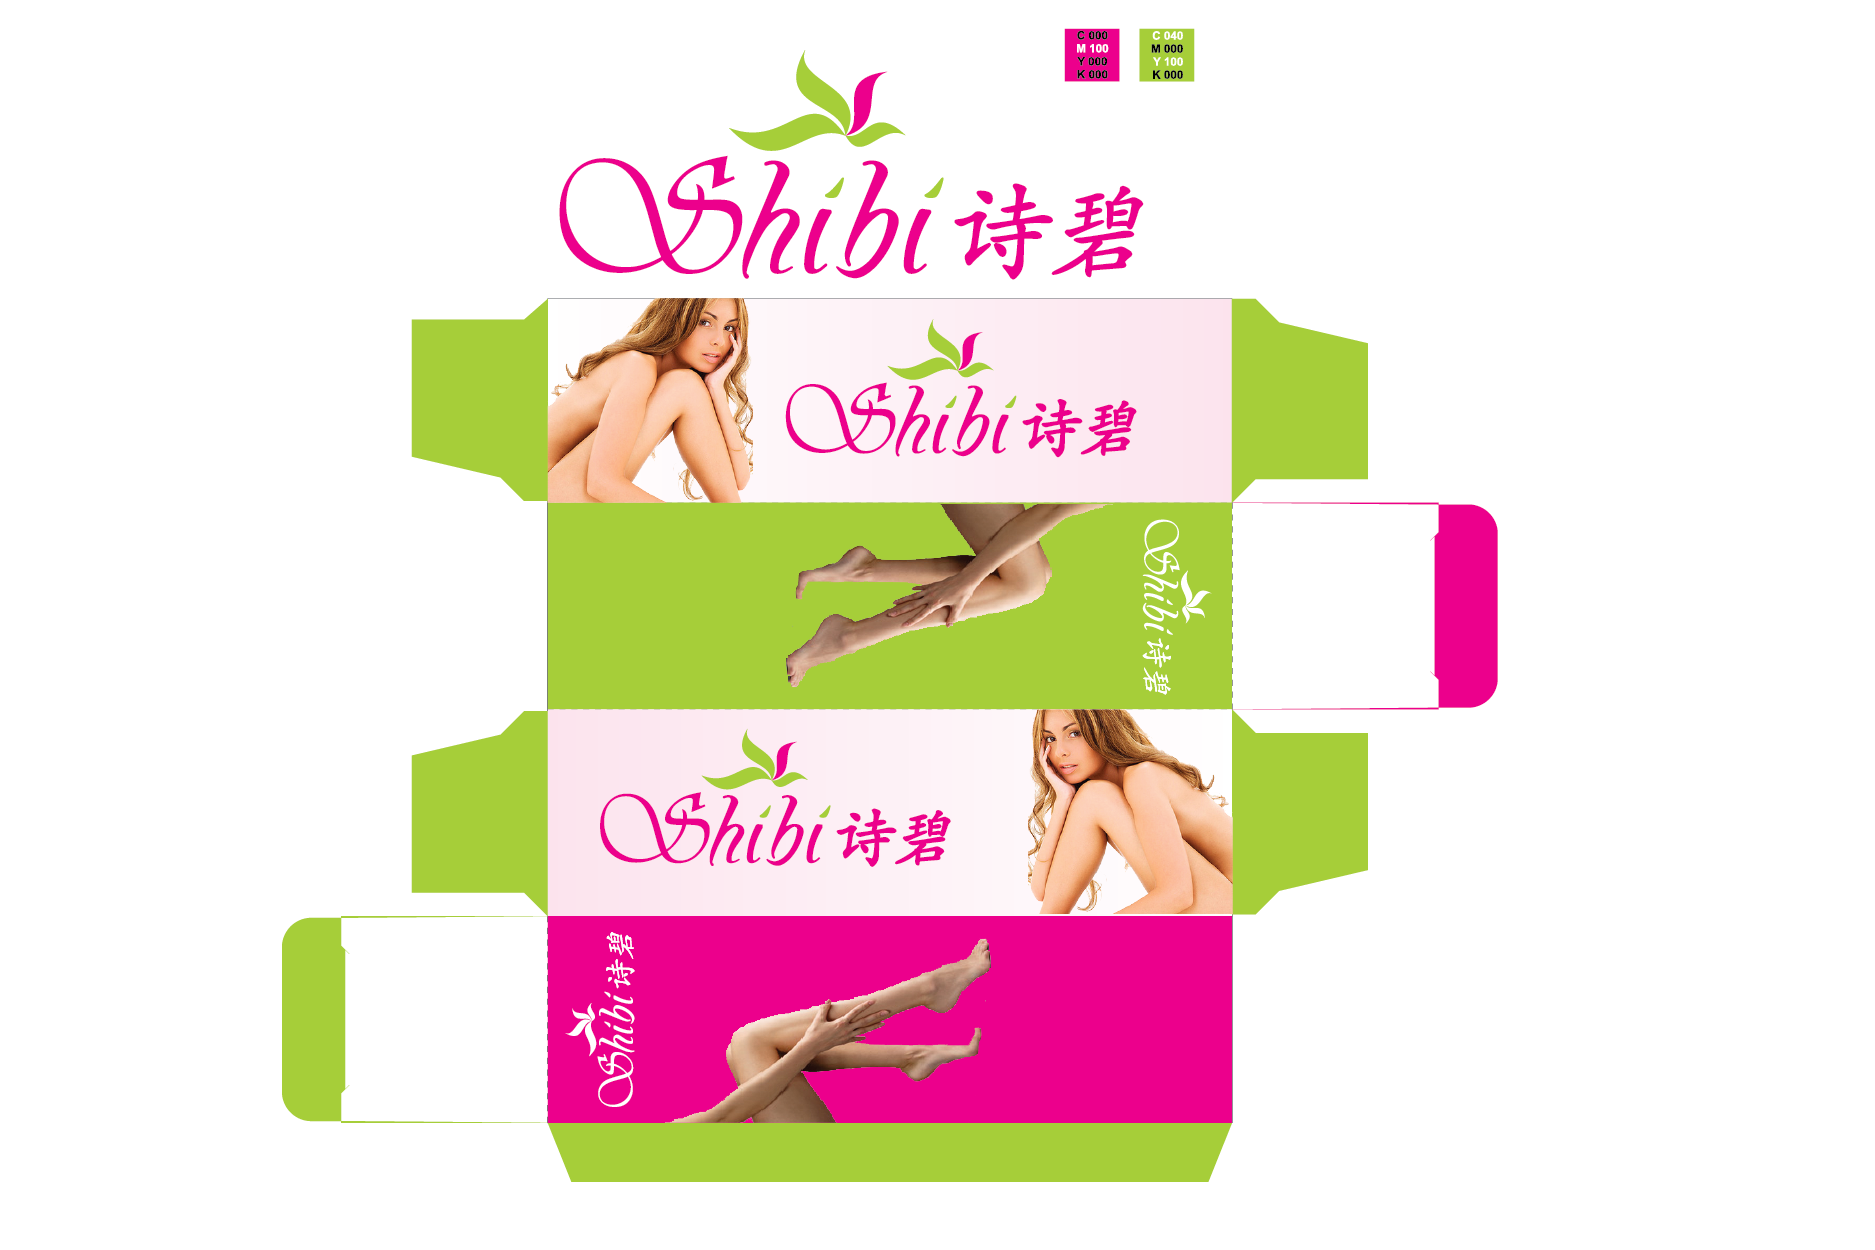 Packaging Design by Private User - Entry No. 6 in the Packaging Design Contest Creative Packaging Design for Shibi-诗碧.